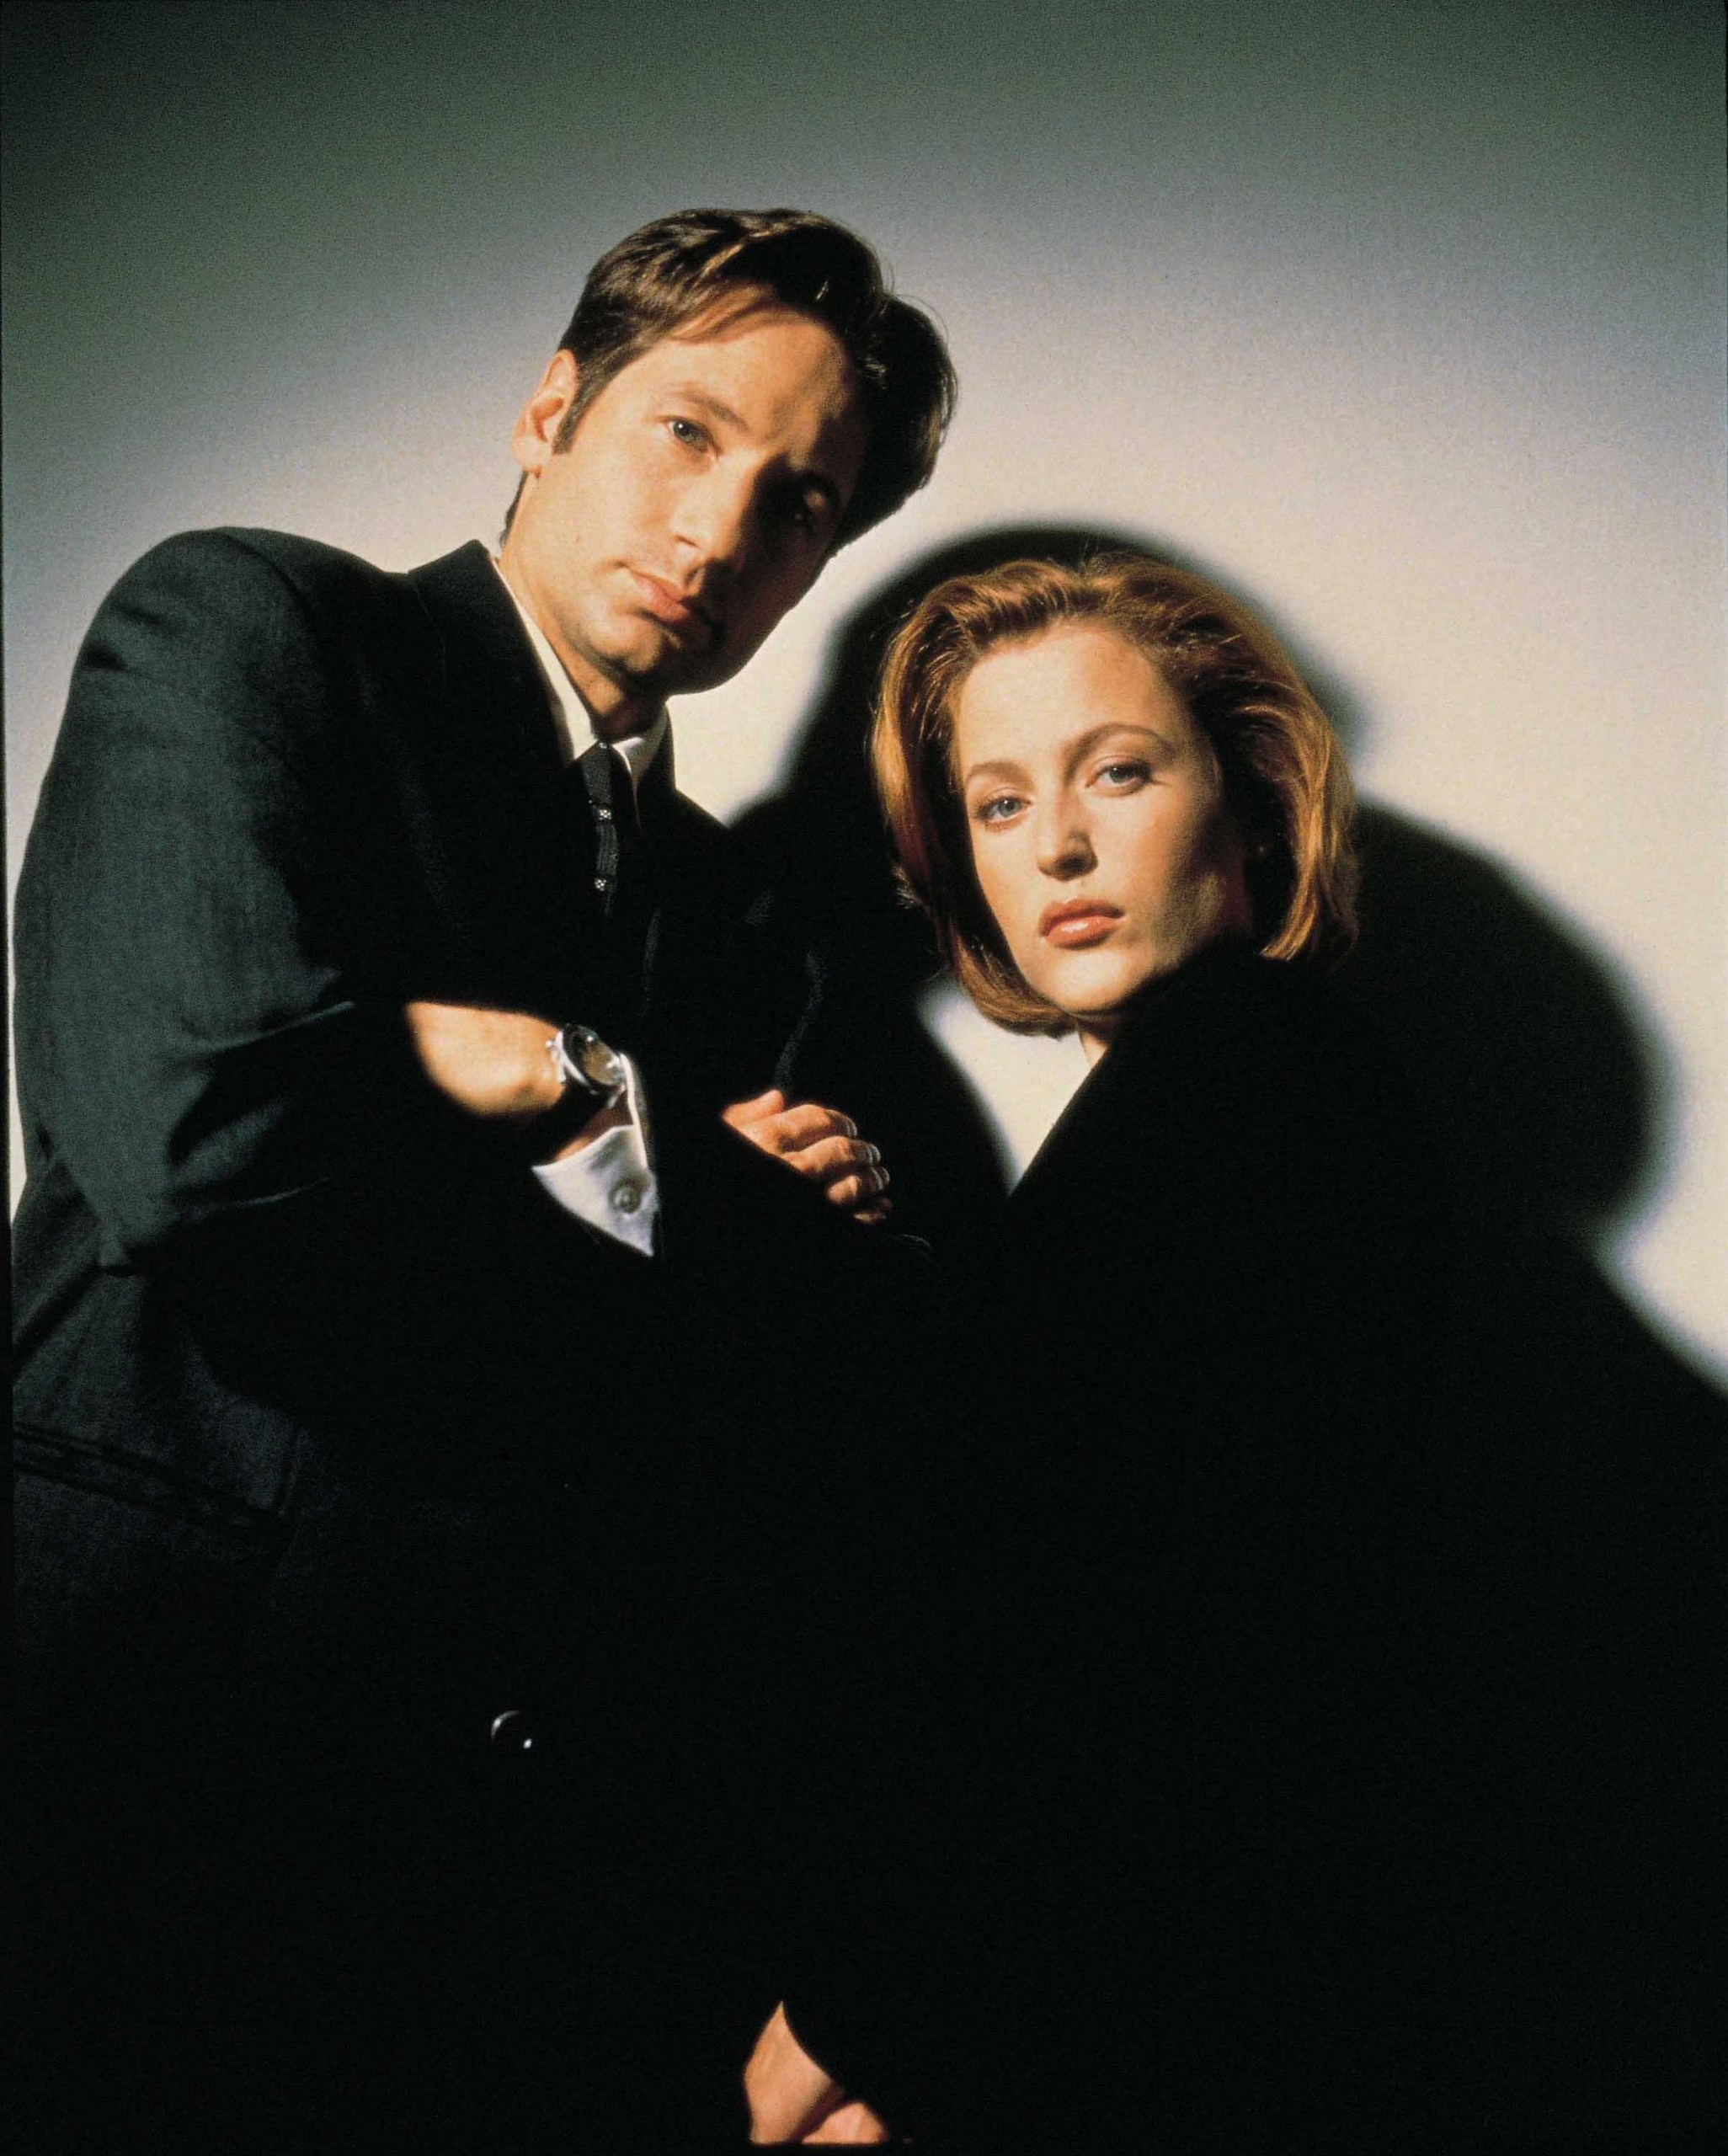 THE X FILES IS ING BACK TO TV